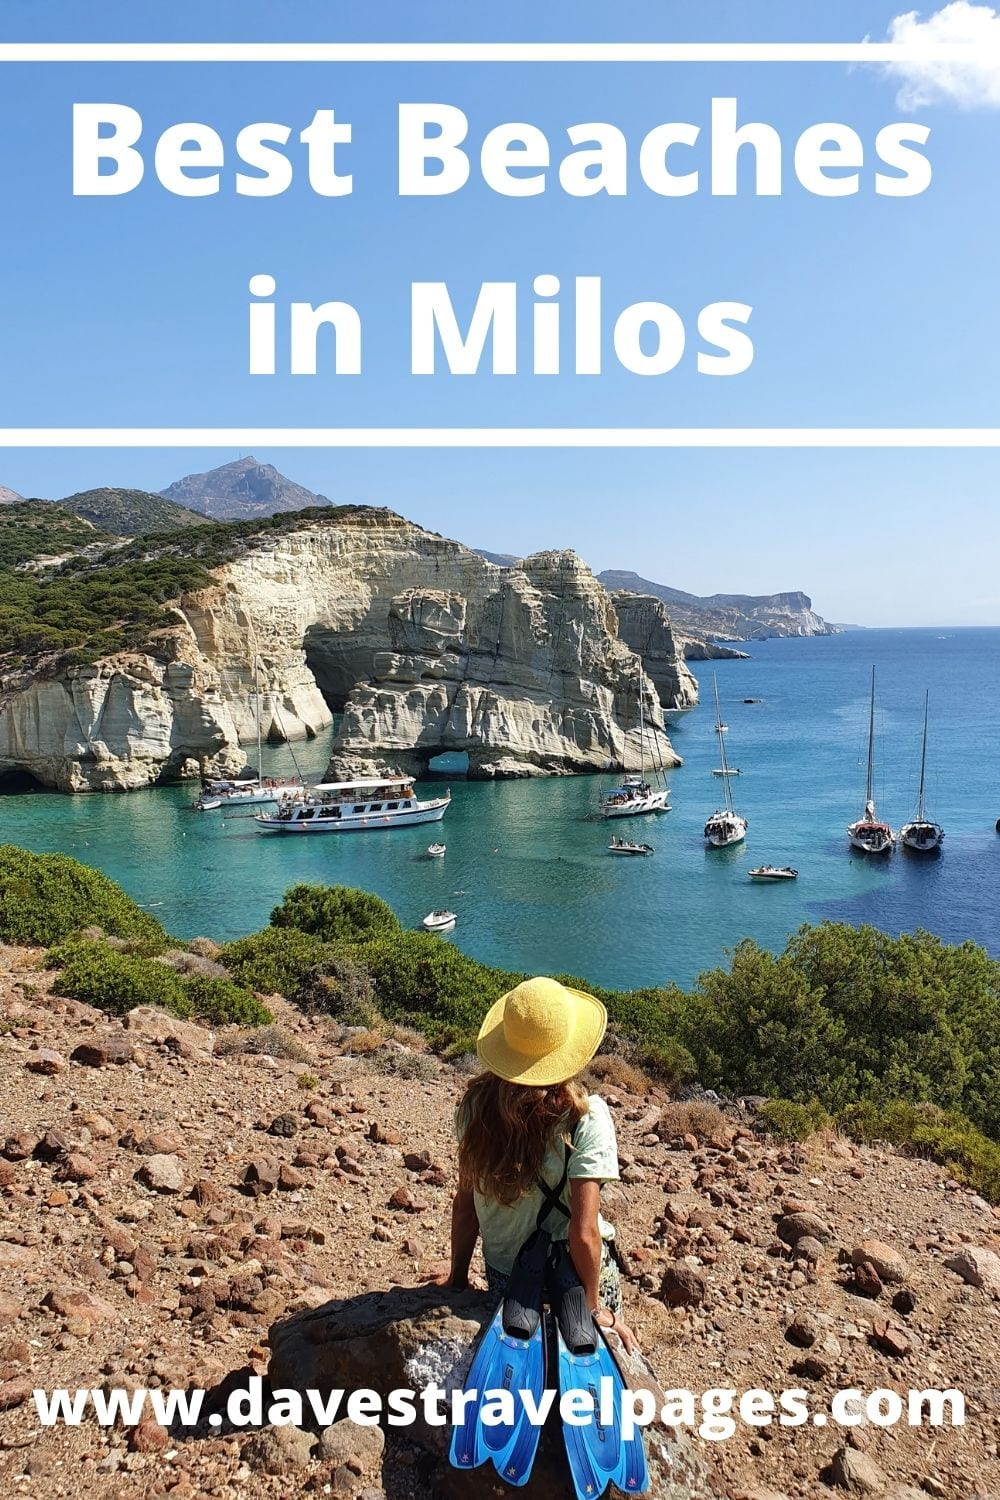 The ultimate guide to the best beaches in Milos. With over 70 amazing beaches to choose from, the Greek island of Milos is perfect for beach lovers!